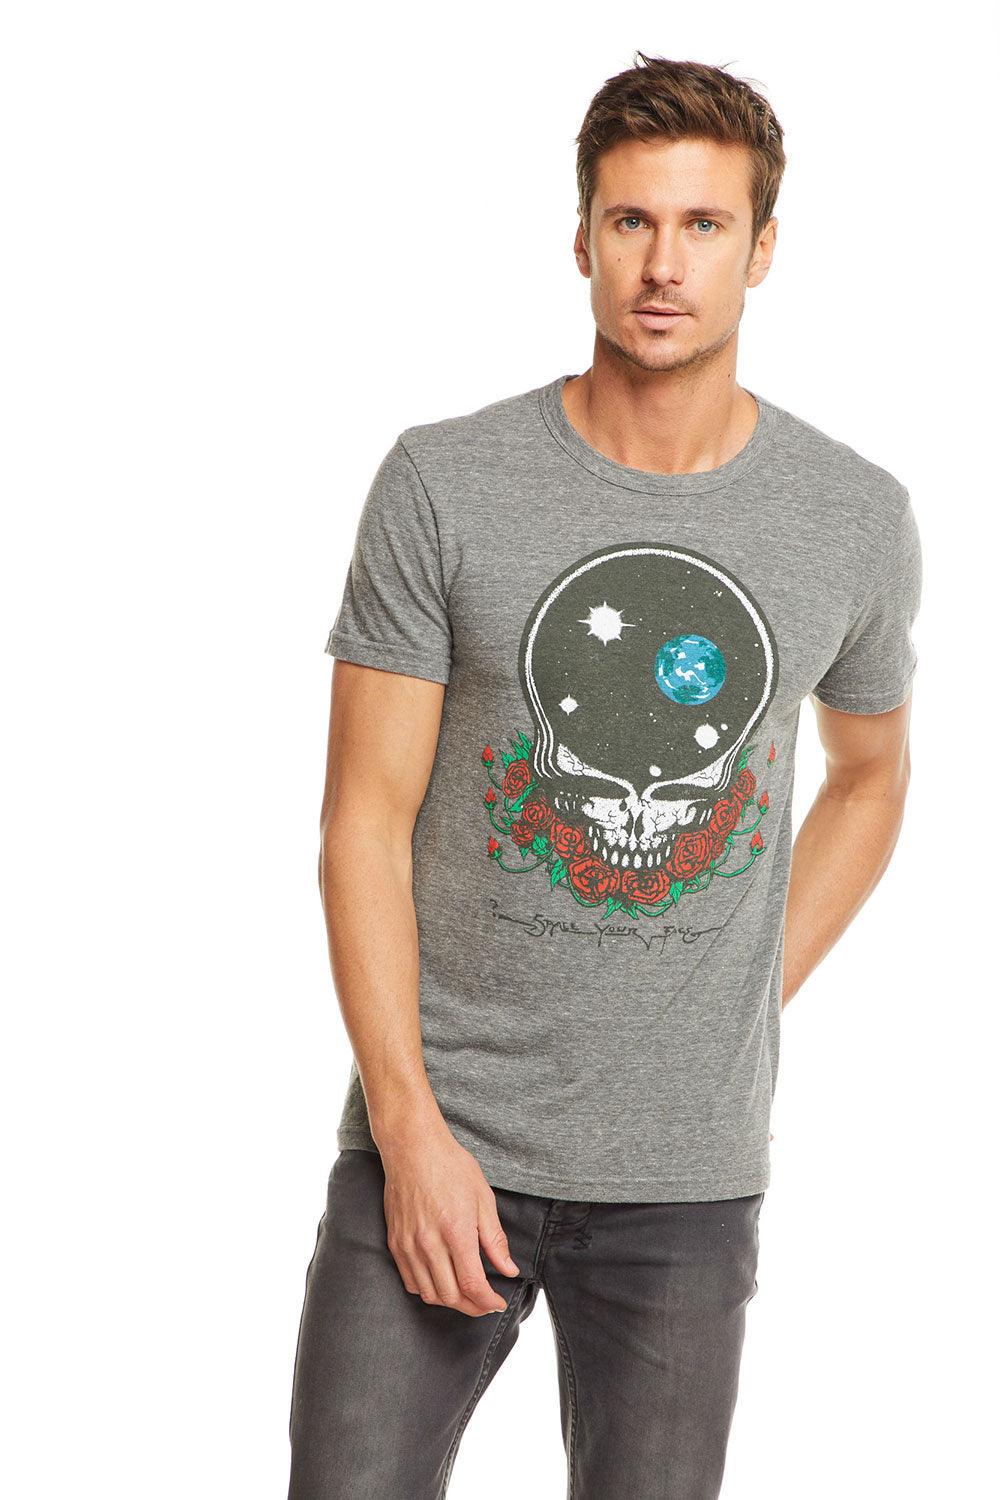 Grateful Dead - Space Your Face, MENS, chaserbrand.com,chaser clothing,chaser apparel,chaser los angeles